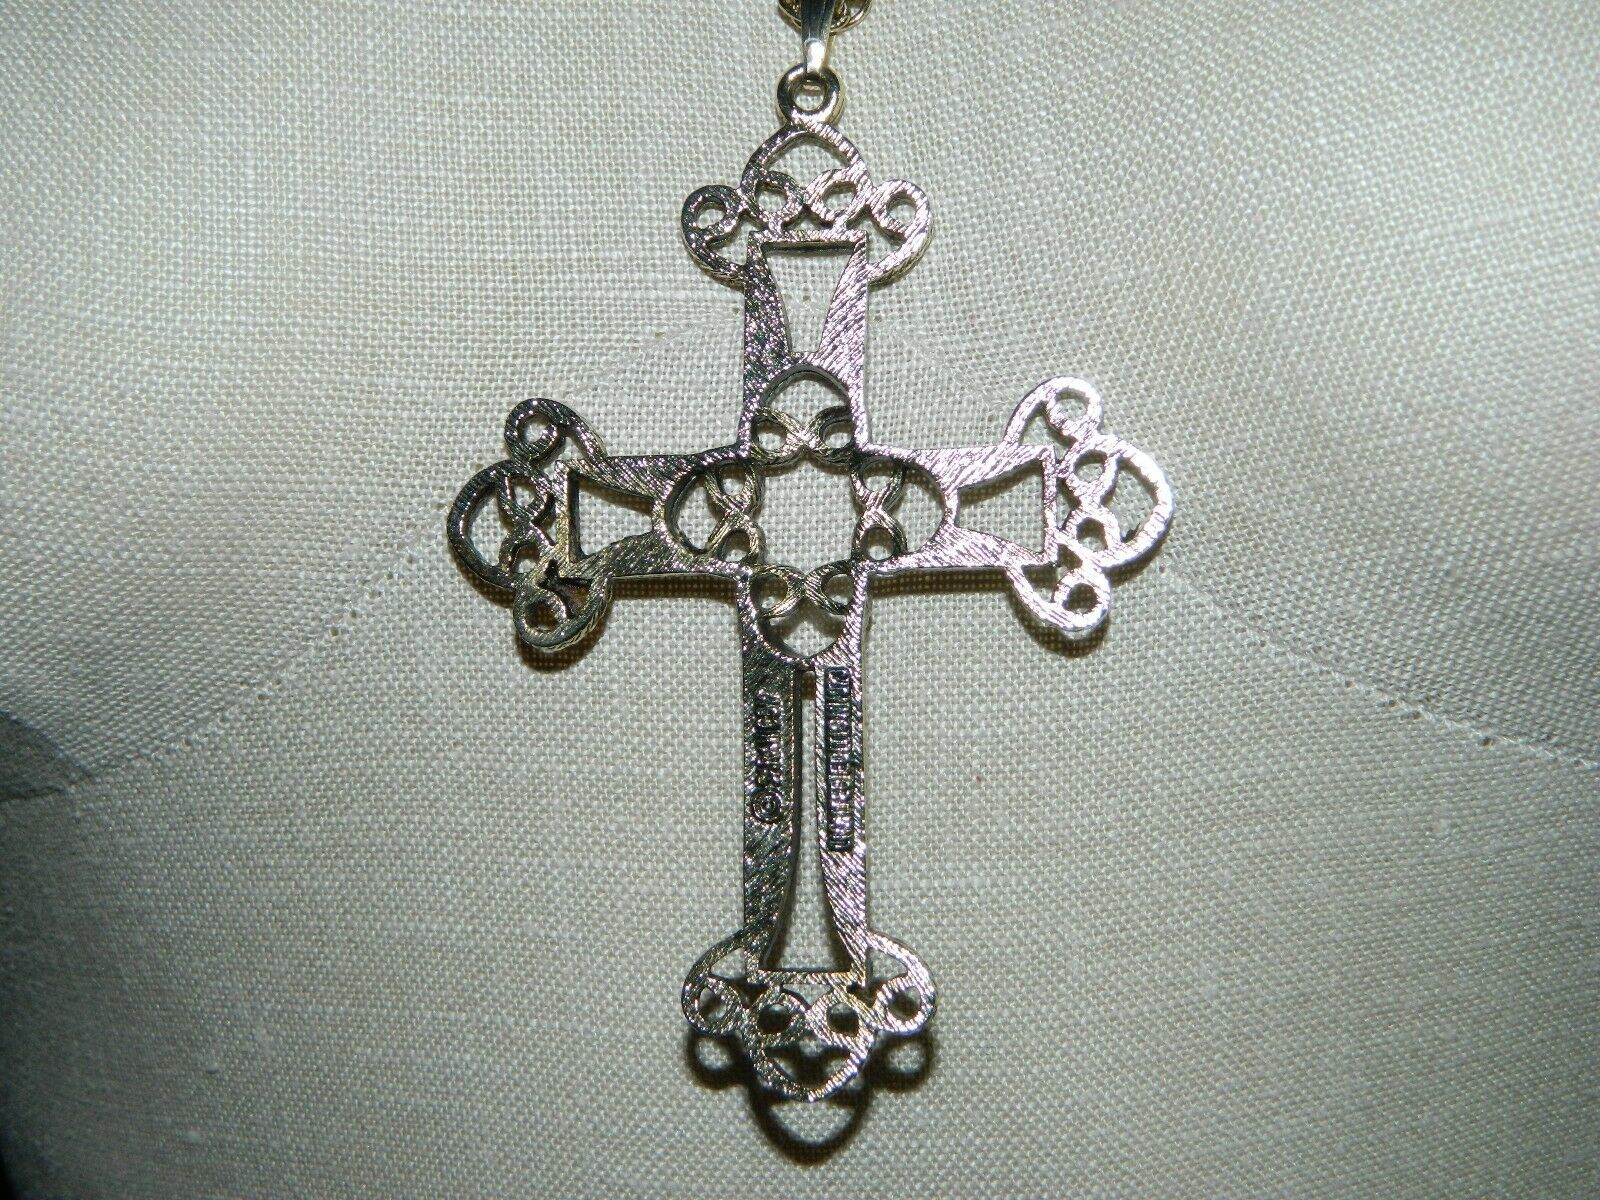 VTG SARAH COVentry GT Gothic Victorian Cross Limited Edition 1973 Necklace